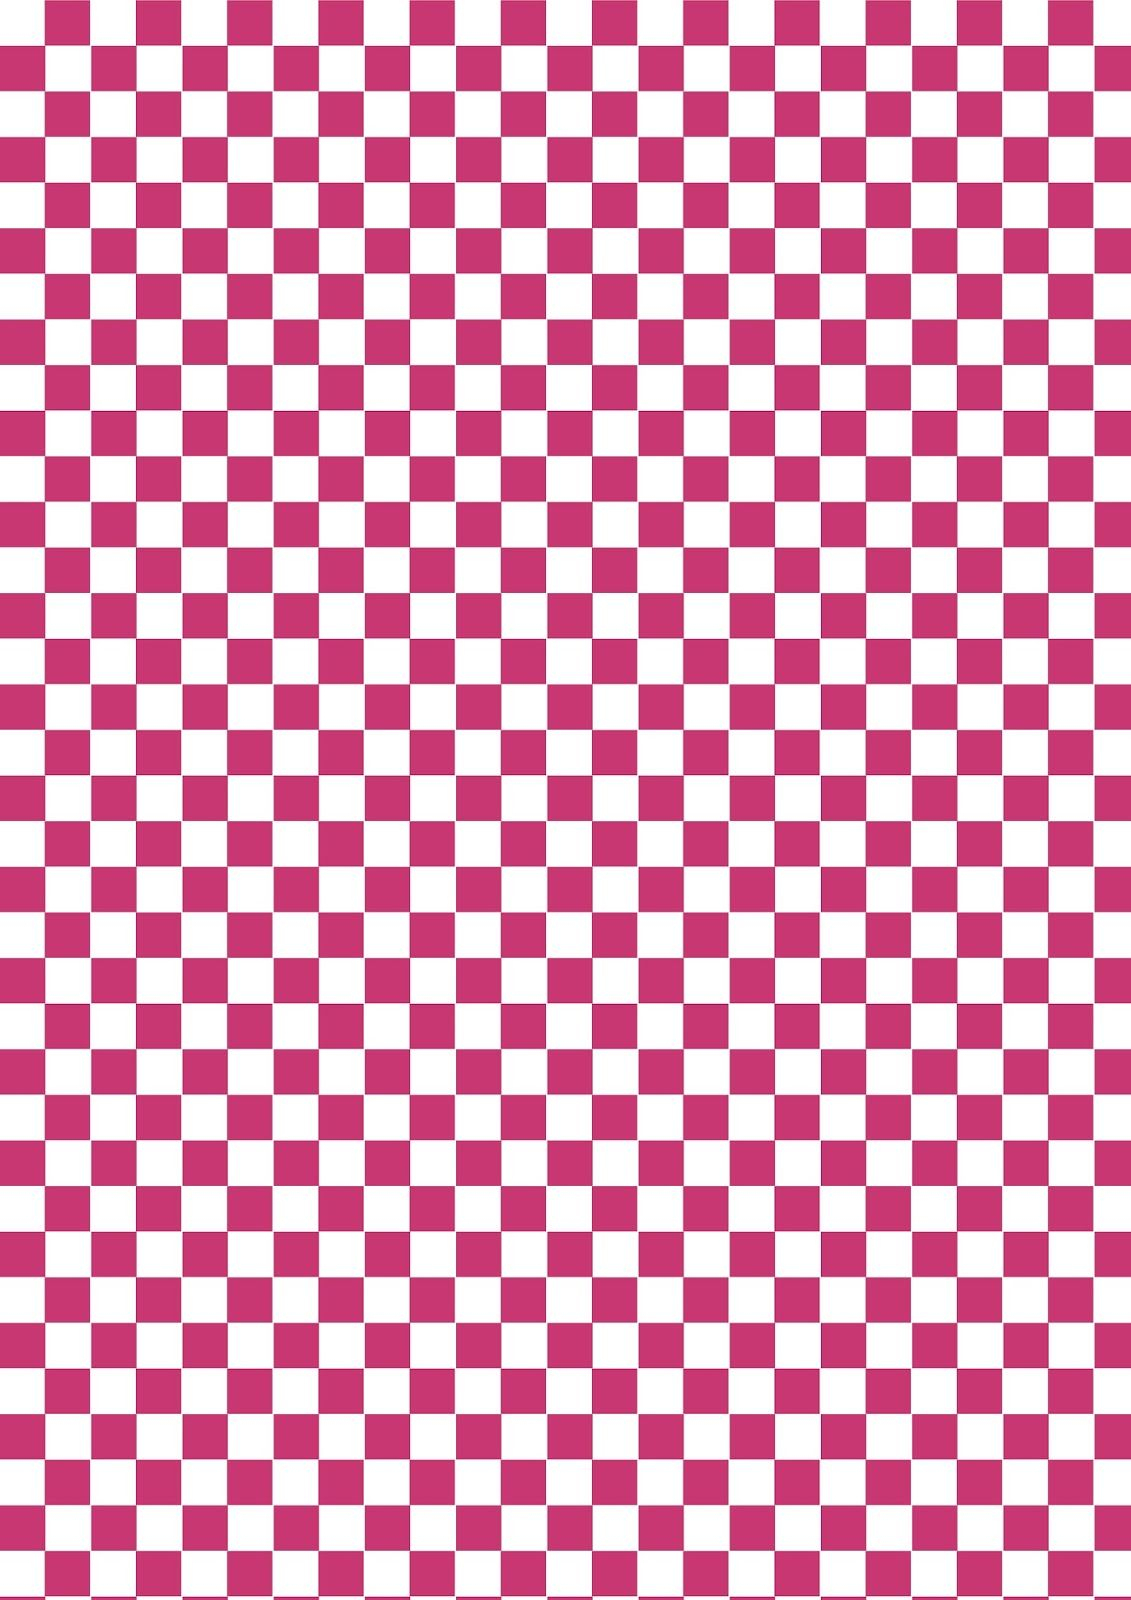 Free Digital Checkered Scrapbooking Paper: Bluish-Red And White - Free Printable Pattern Paper Sheets